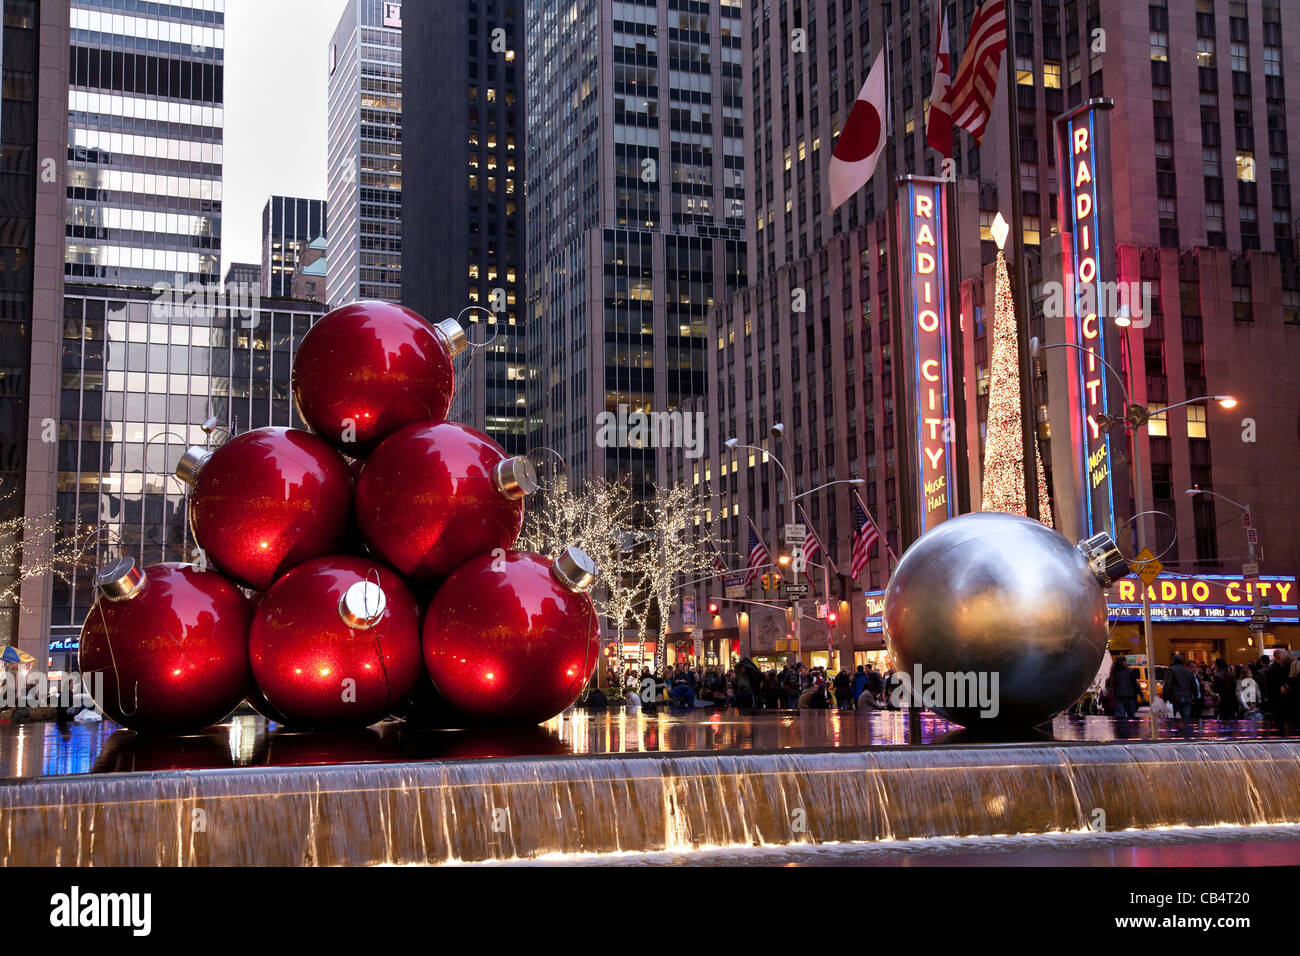 Holiday Christmas Ornament Display, Avenue of the Americas, NYC ...